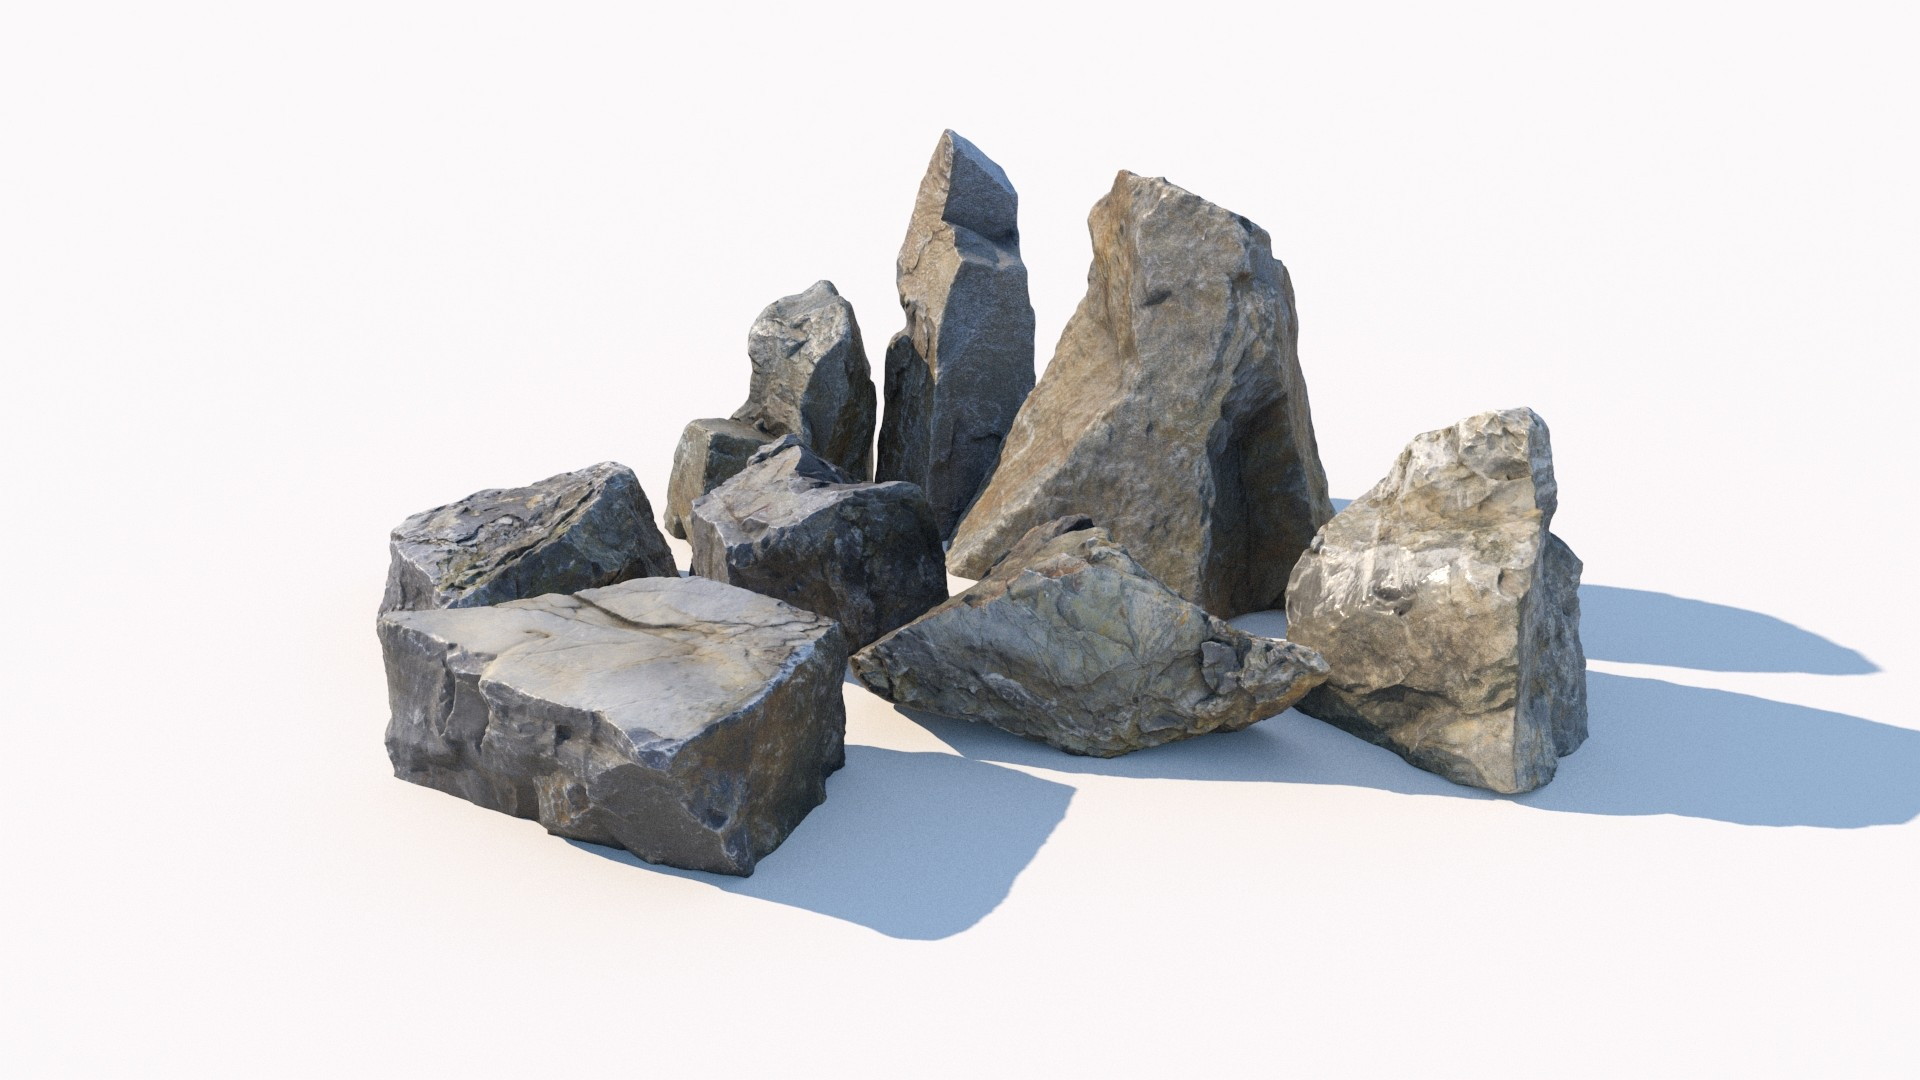 Scanned stones collection